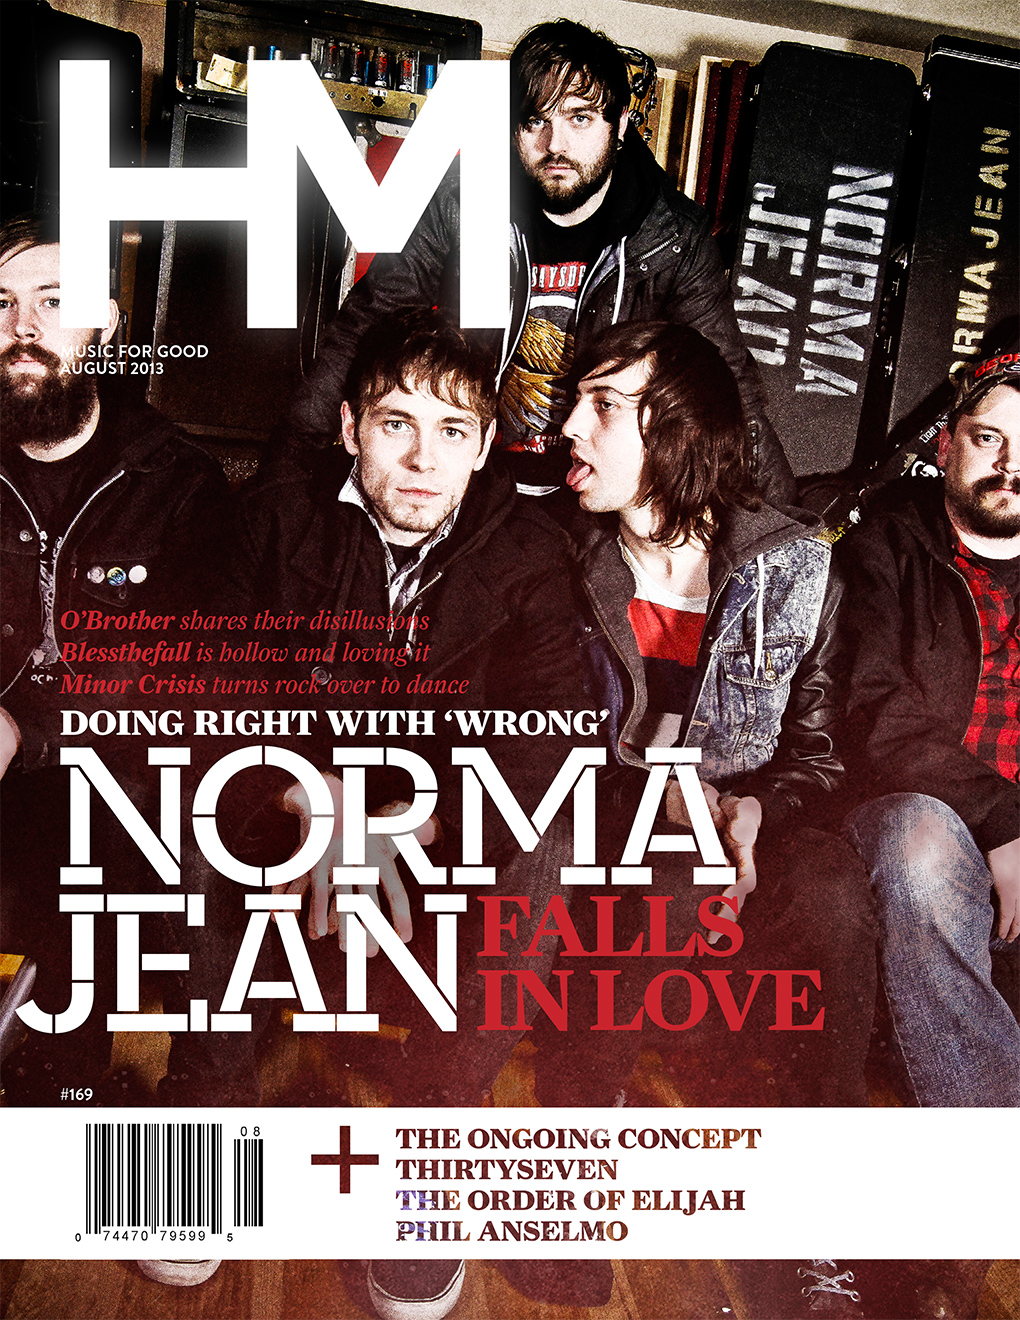 The August 2013 issue of HM Magazine